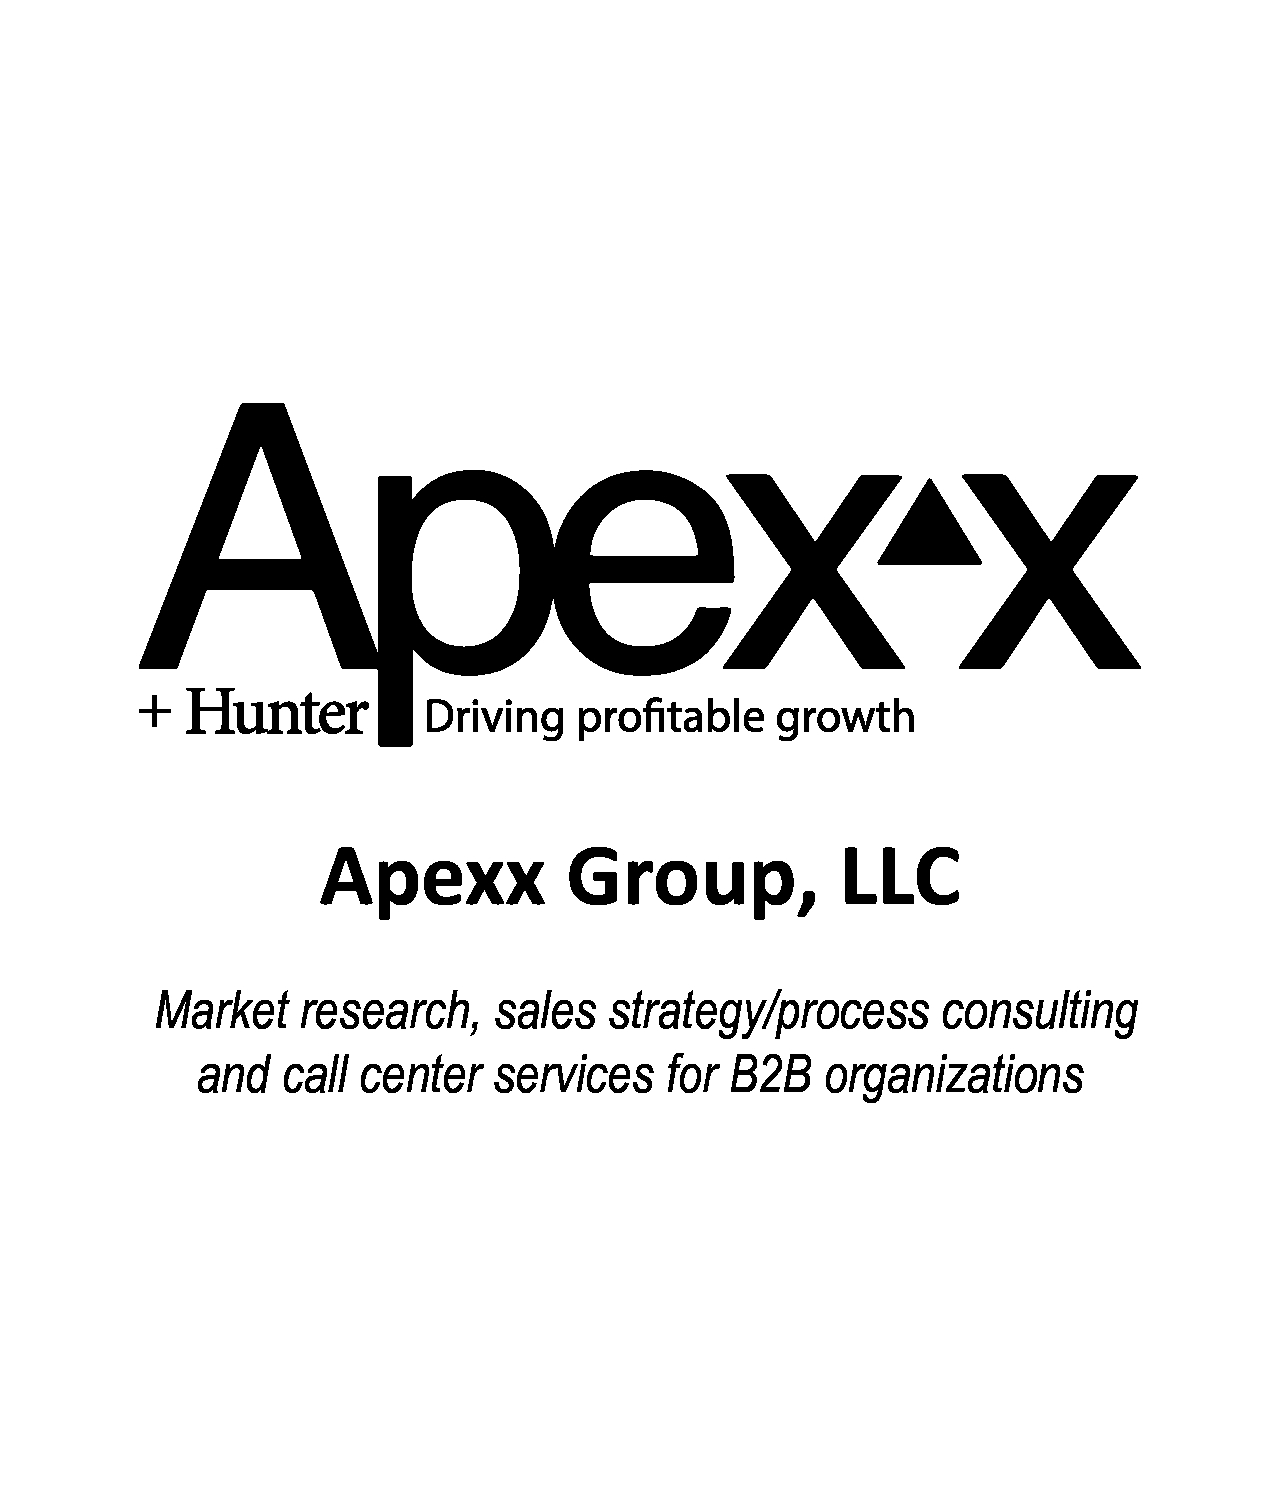 Apexx Group